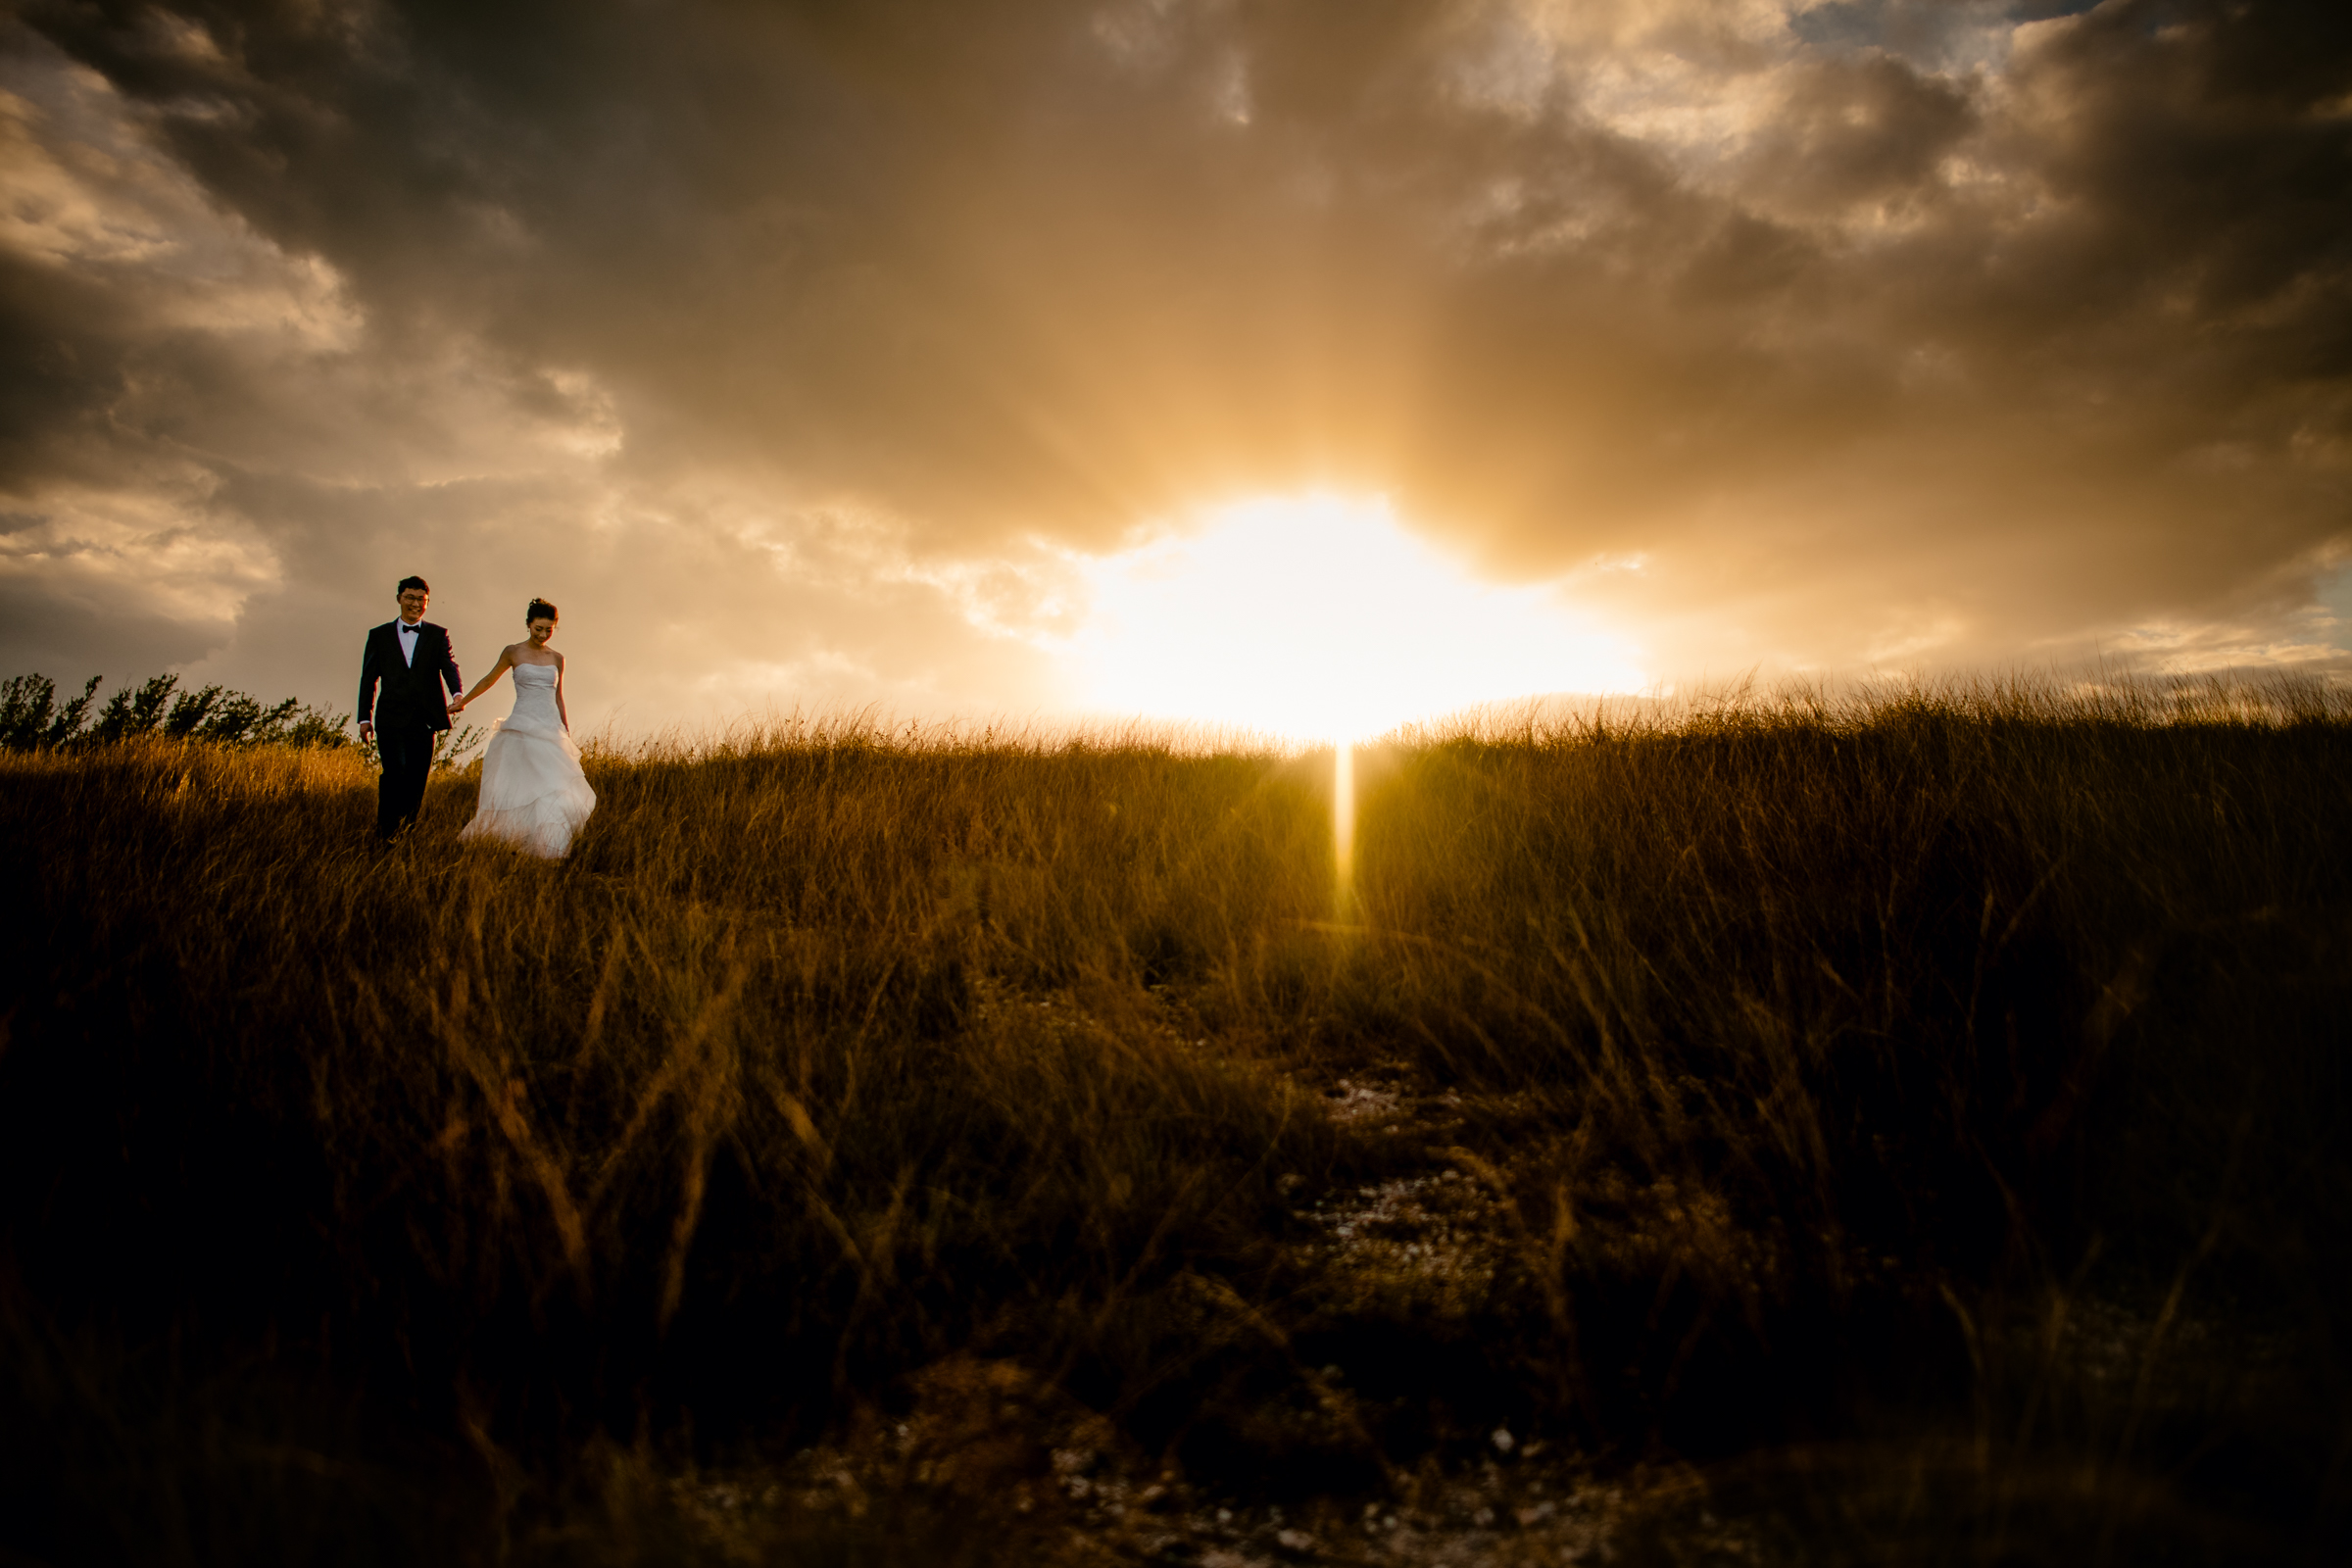 Couple in field against bright sky - photo by Michael Freas Photography